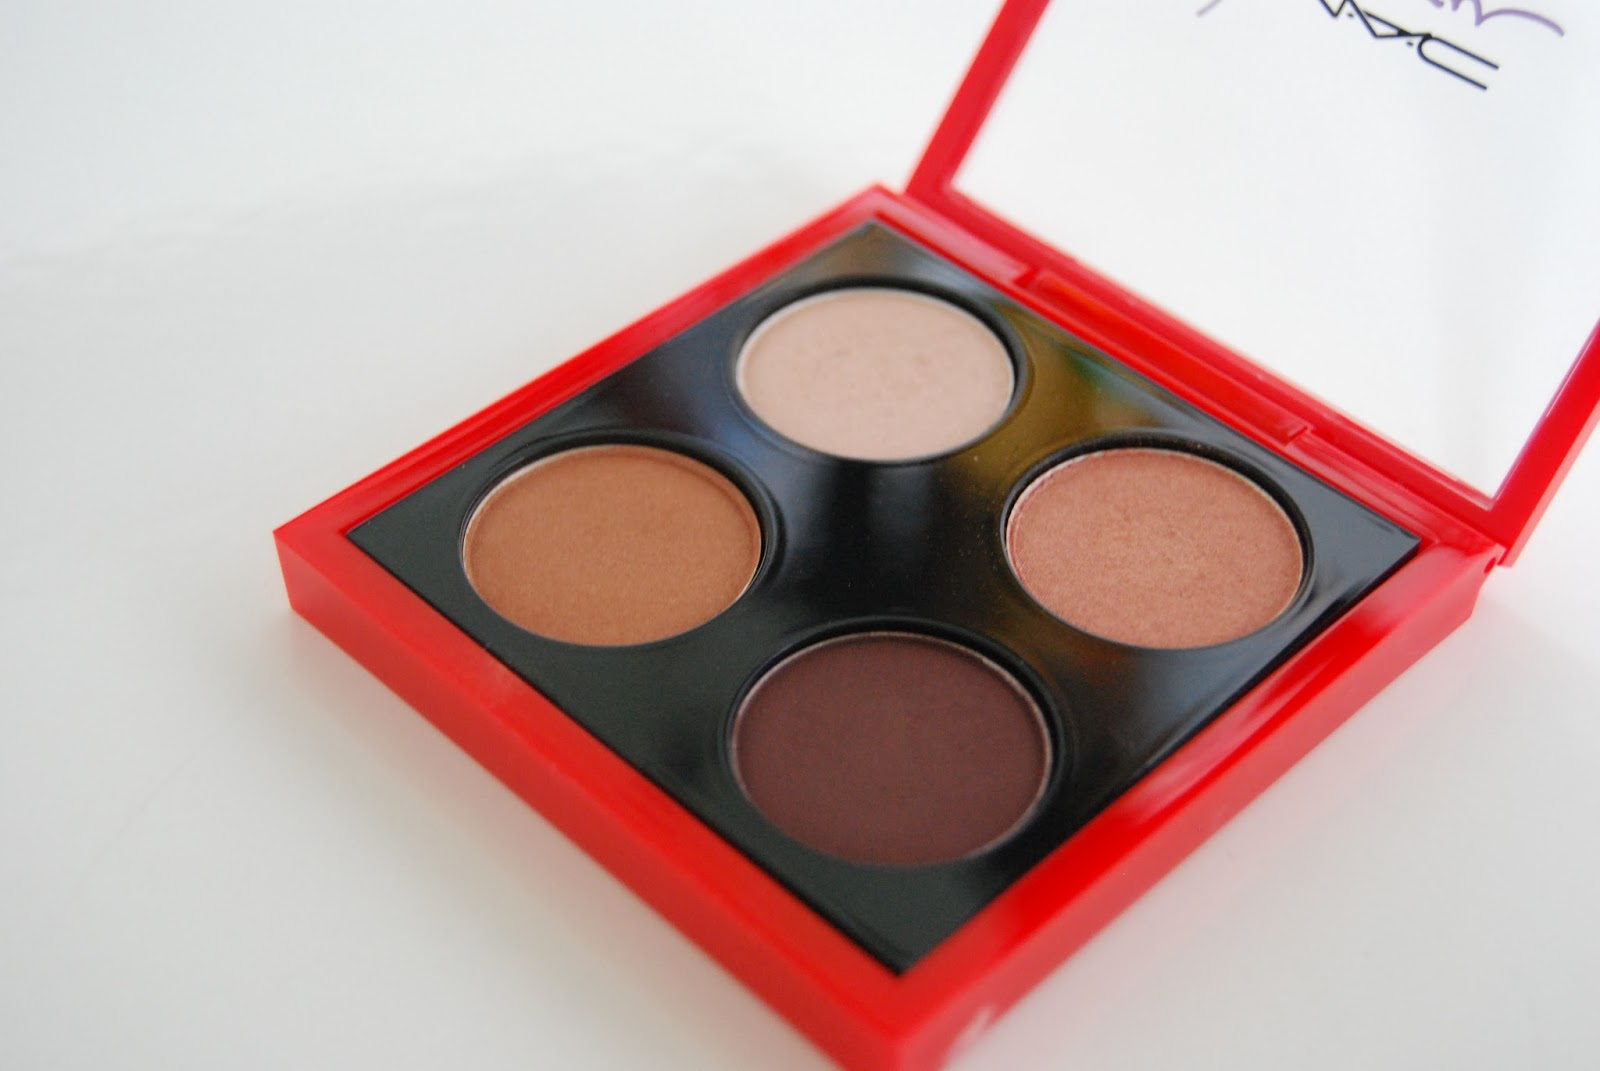 MAC Sharon Osbourne Quad Sweet Eyes Sexy Eyes Embark Femme Fatale Duchess Eyeshadow